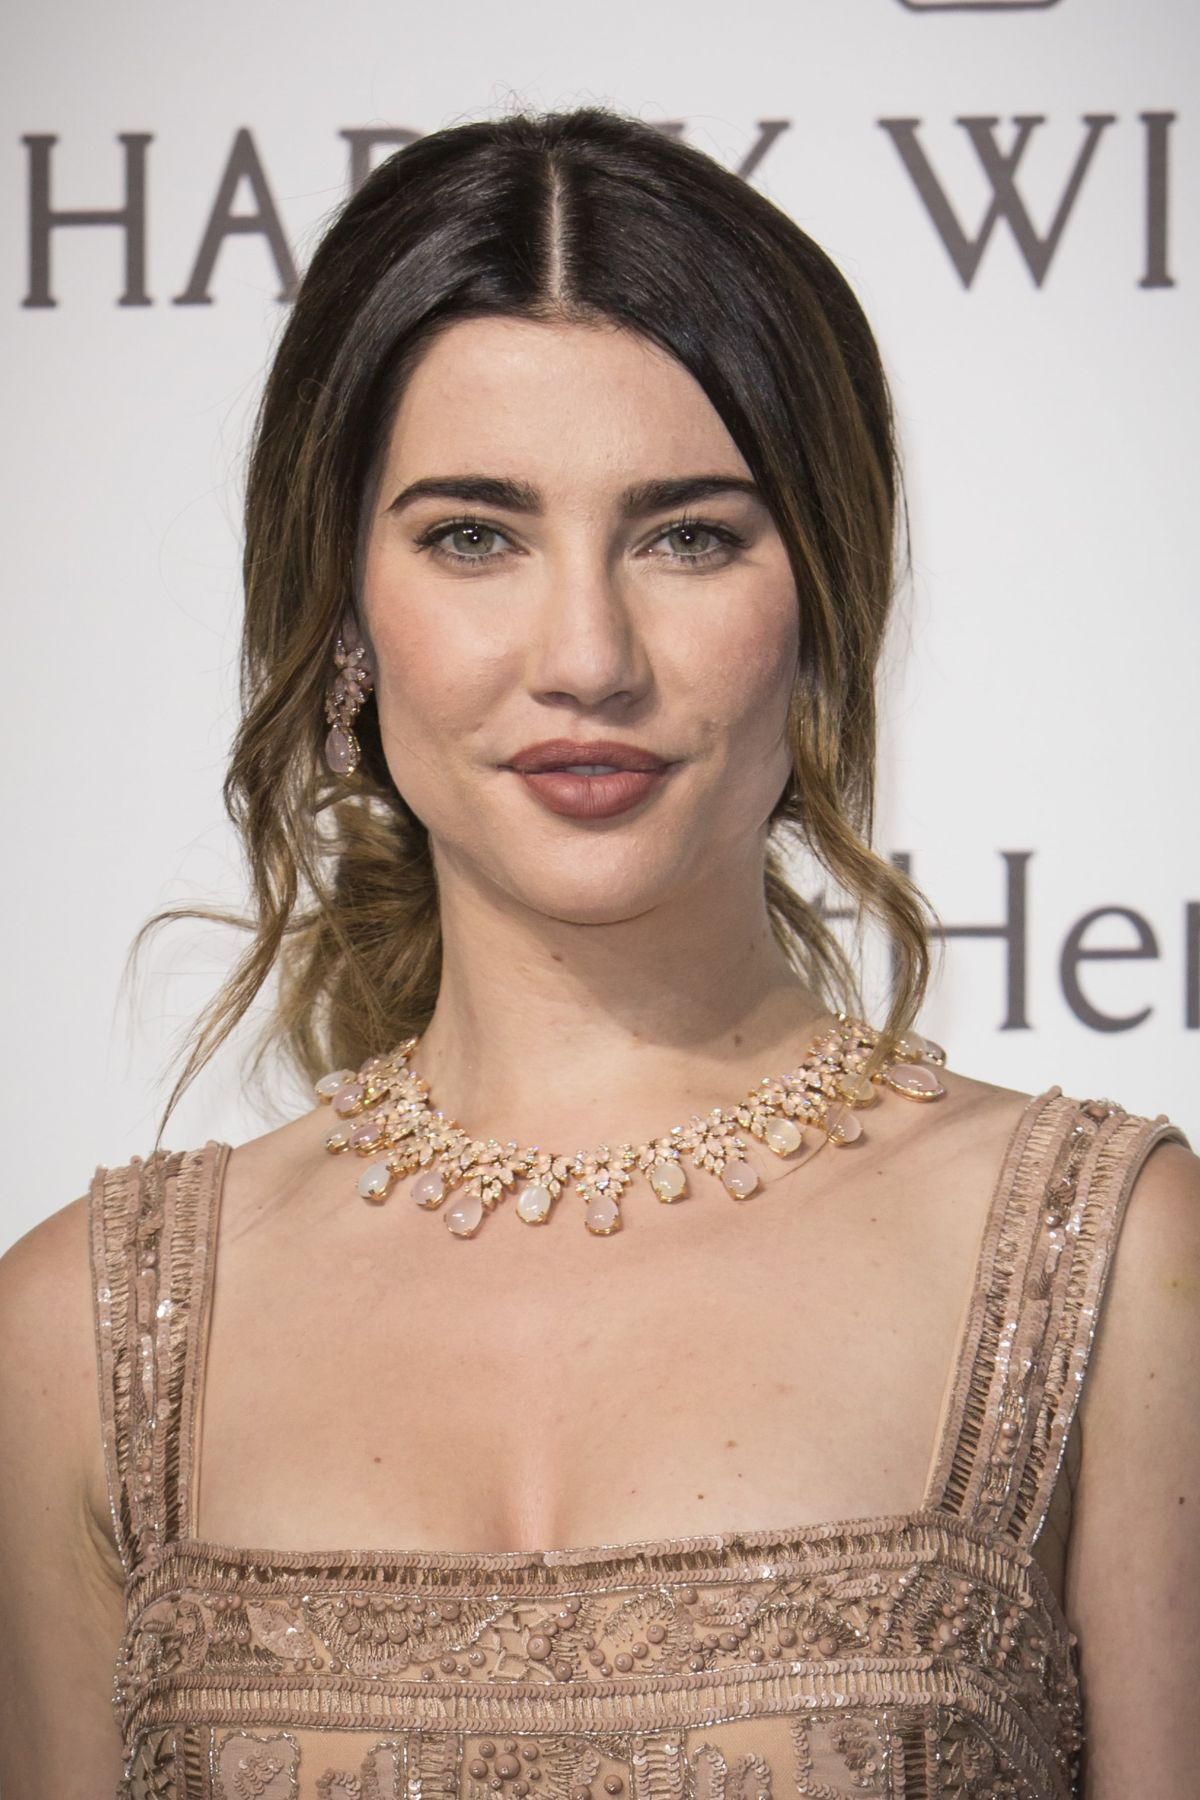 JACQUELINE MACINNES WOOD at amfAR Gala in Milan 09/26/2015 ...